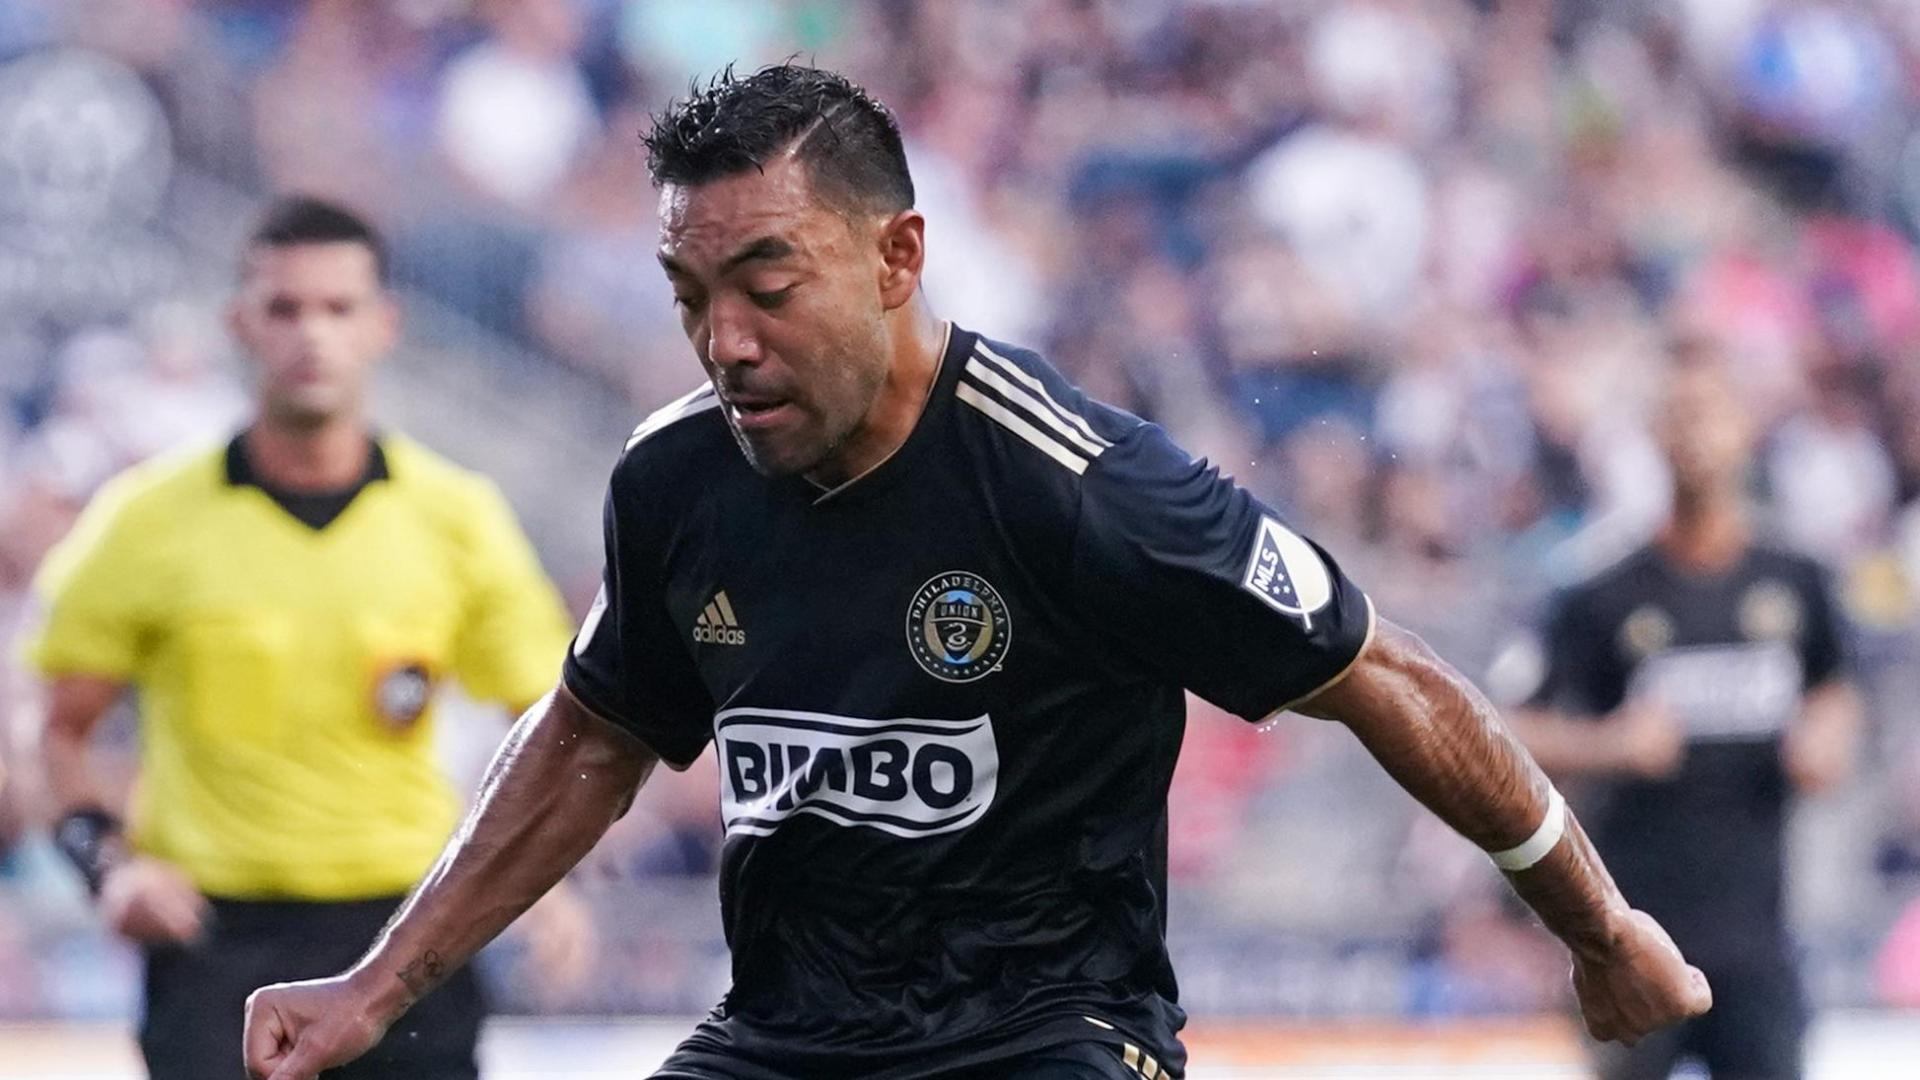 Fabian's incredible goal puts Union in front